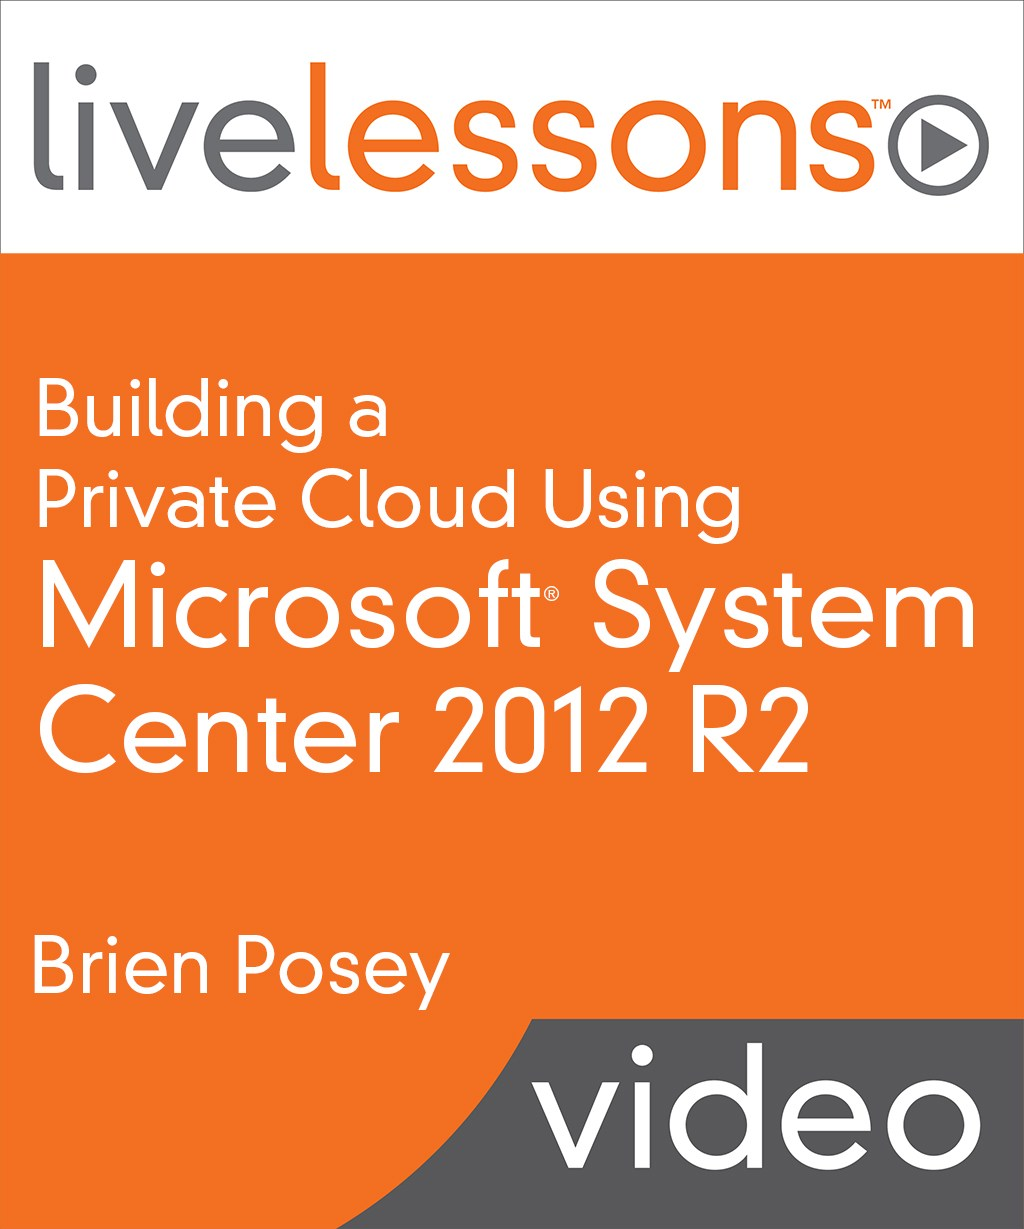 Building a Private Cloud Using Microsoft System Center 2012 R2 Live Lessons (Video Training)